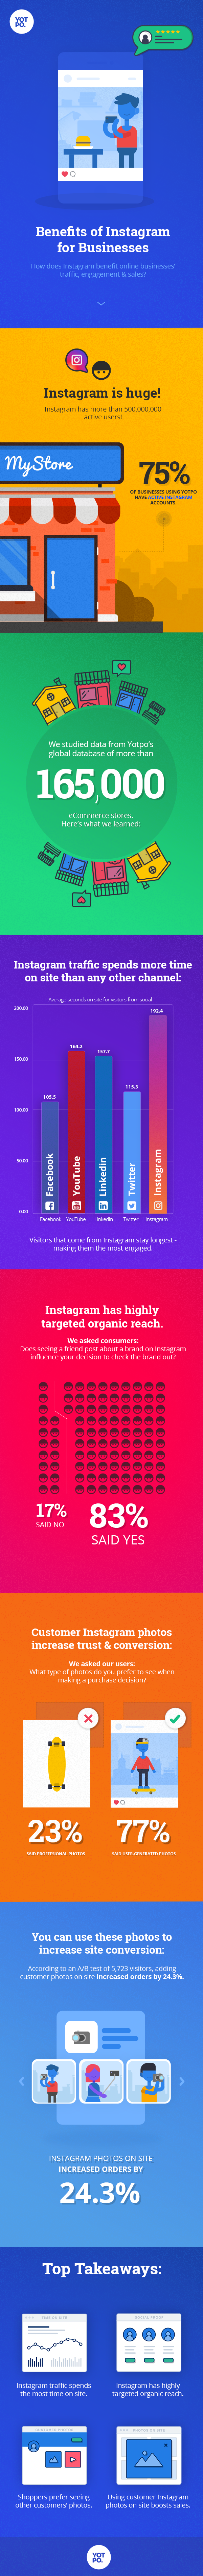 Benefits of Instagram for Businesses #Infographic